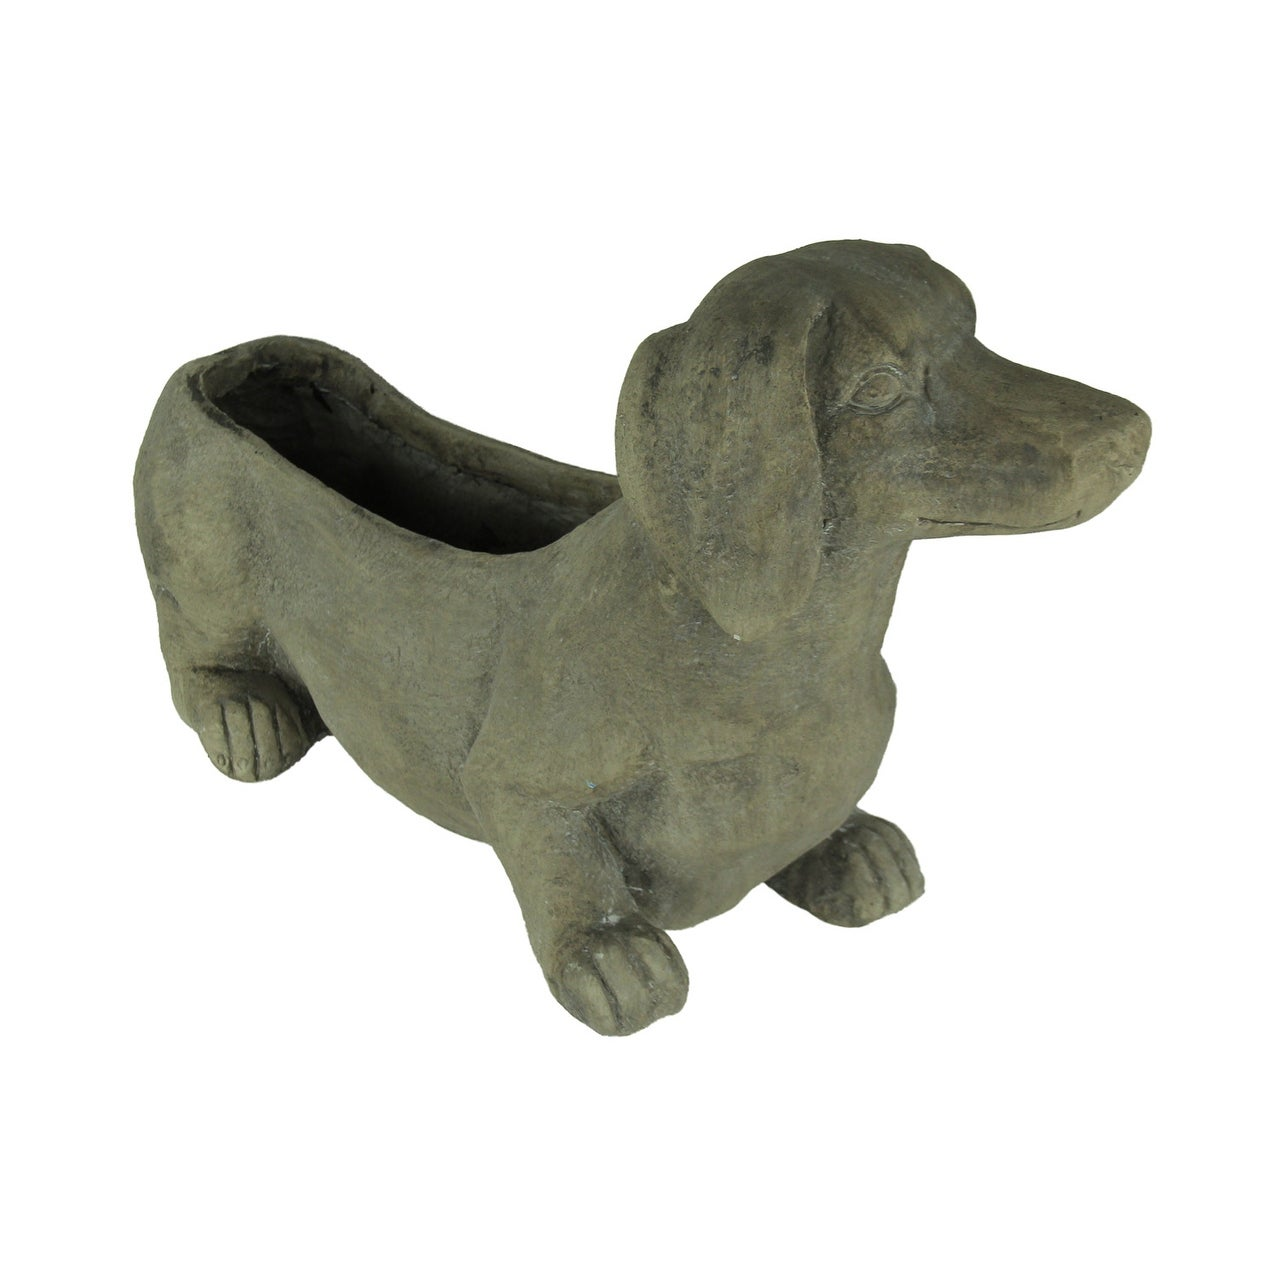 Grey Dachshund Dog Indoor Outdoor Planter 11 X 19 X 5 5 Inches Overstock 27898587